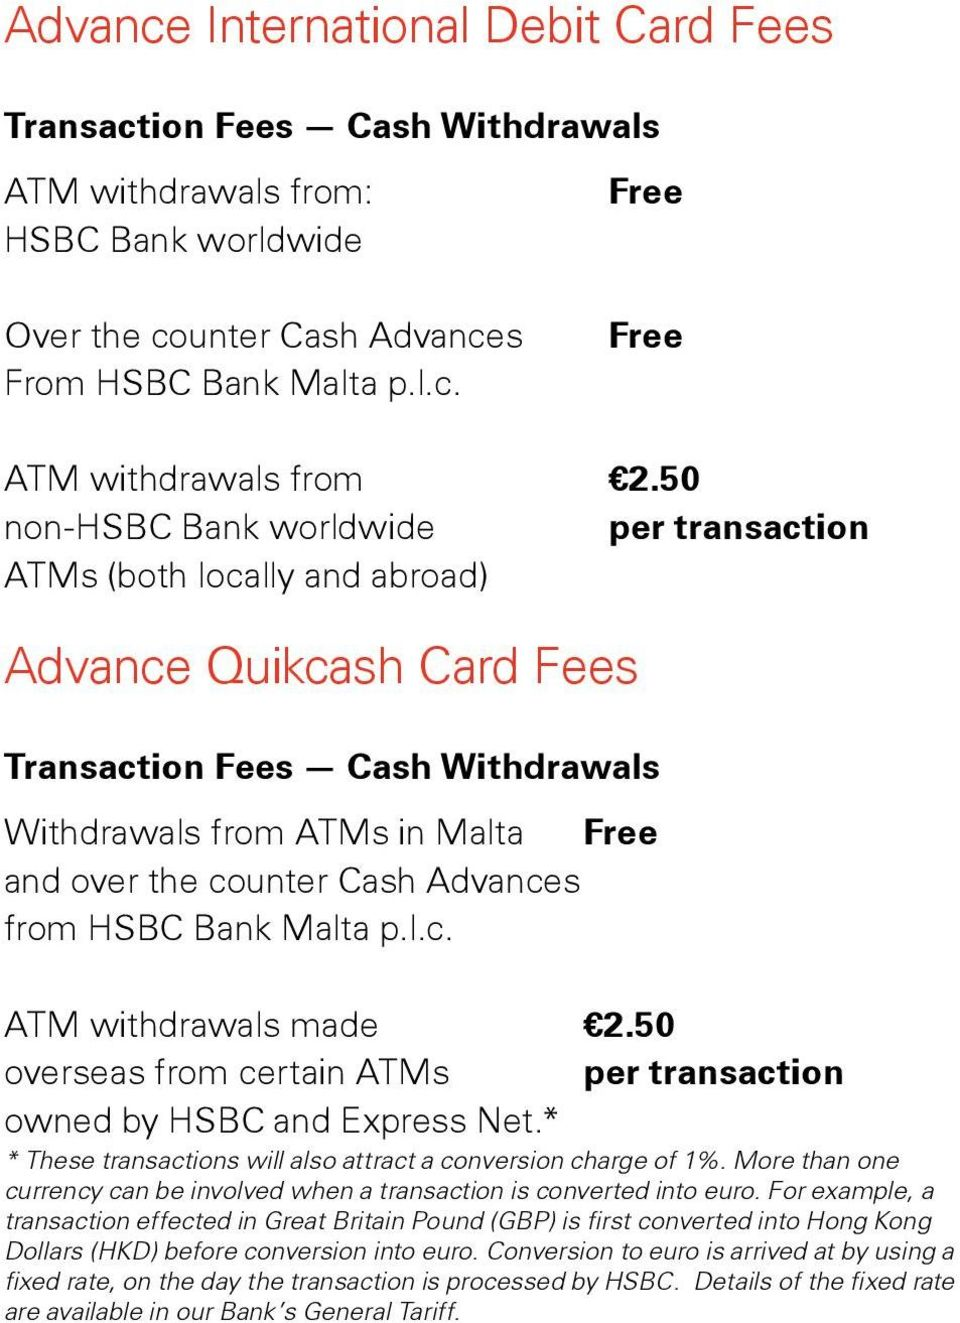 HSBC Advance Credit Card, Advance International Debit Card and